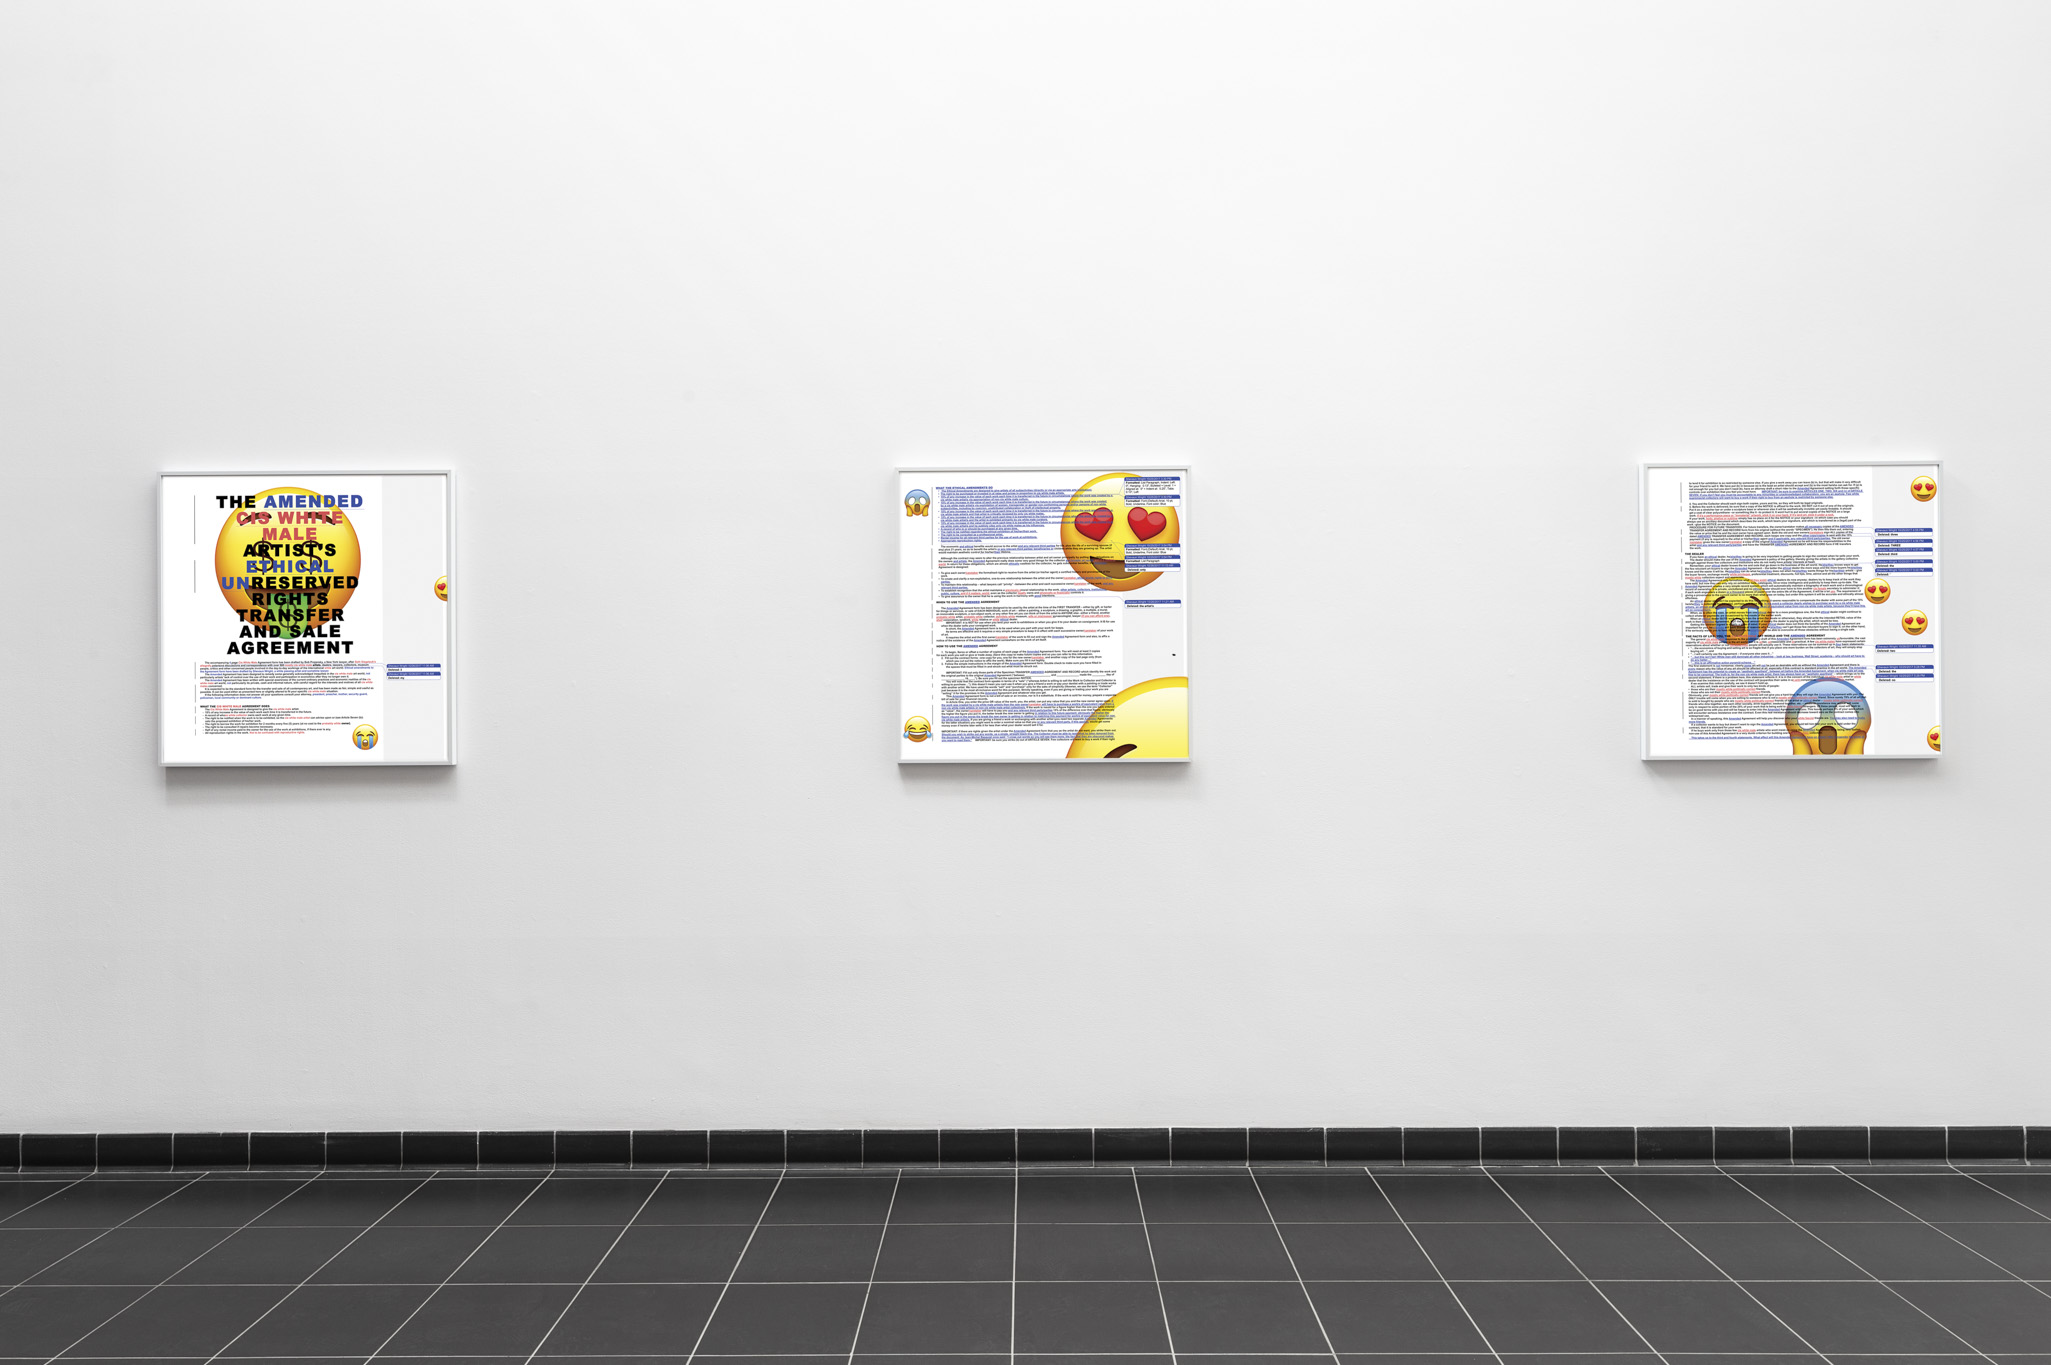 Three artworks line a hallway painted white. The artworks have white frames. The artworks feature a text document that shows edits, and a variety of emojis overlaying the text.